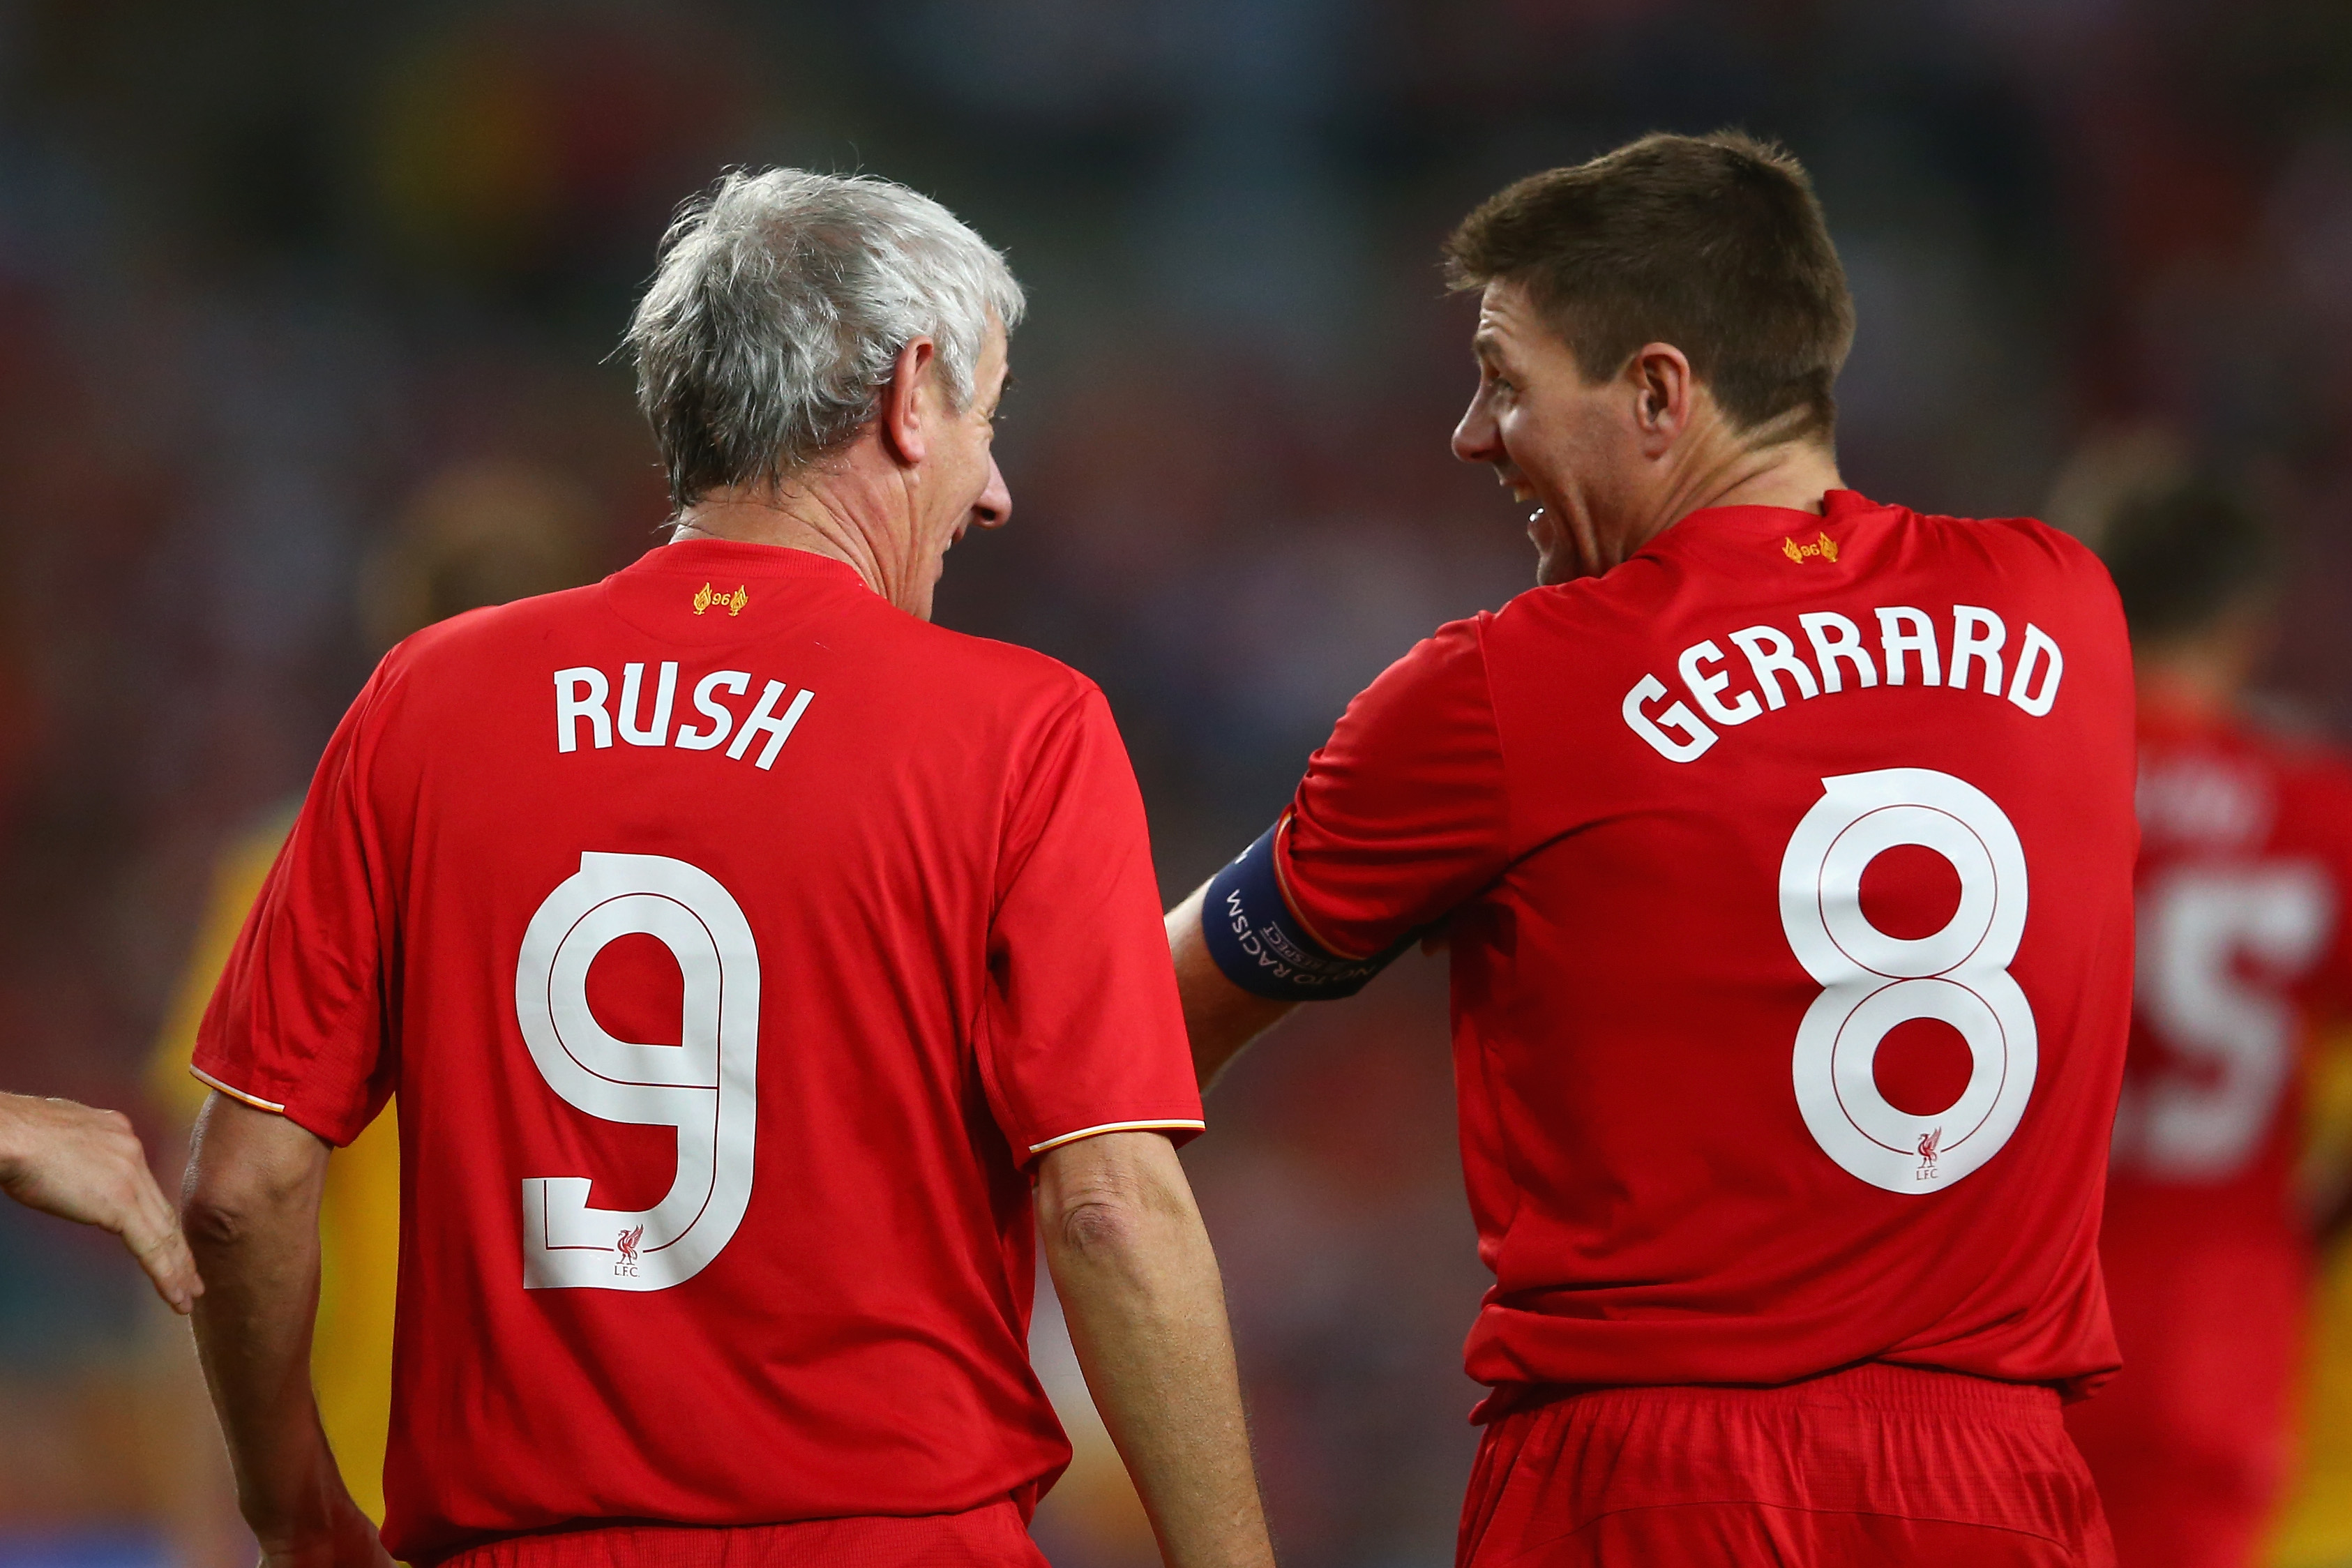 Liverpool legend Ian Rush sends management warning to Steven Gerrard